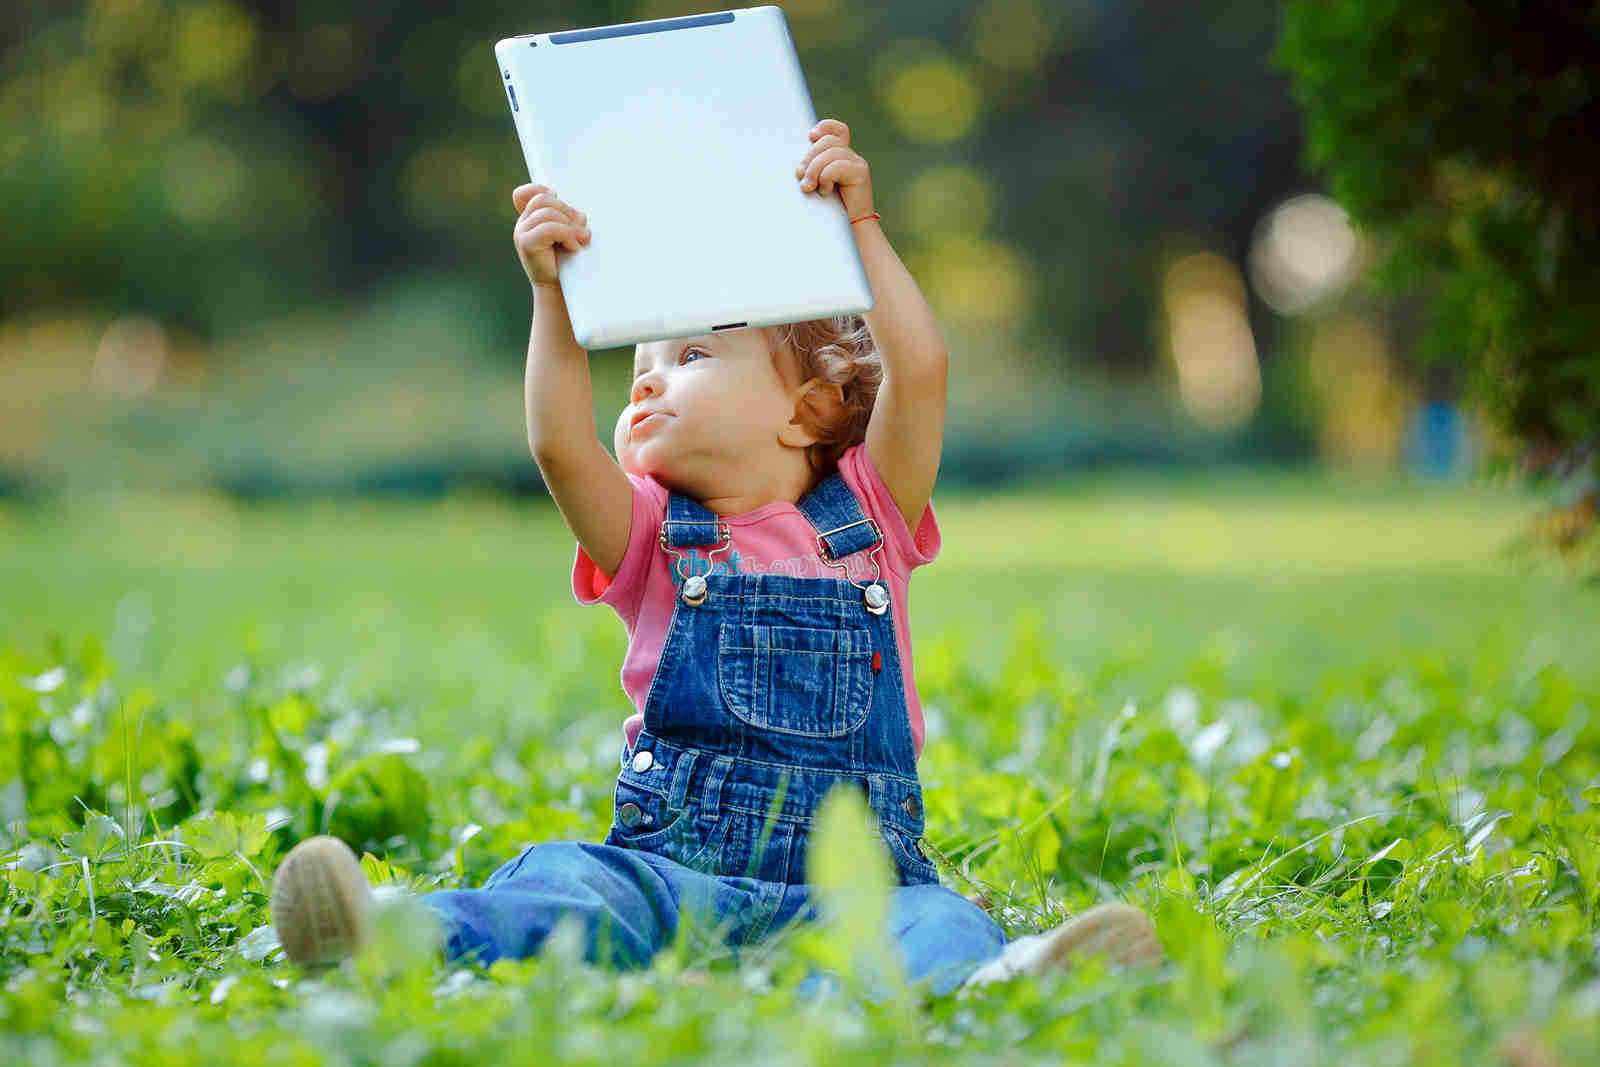 Child playing with tablet outdoors. Cheerful child with a portable PC in your hands. Child holding a tablet over his head.